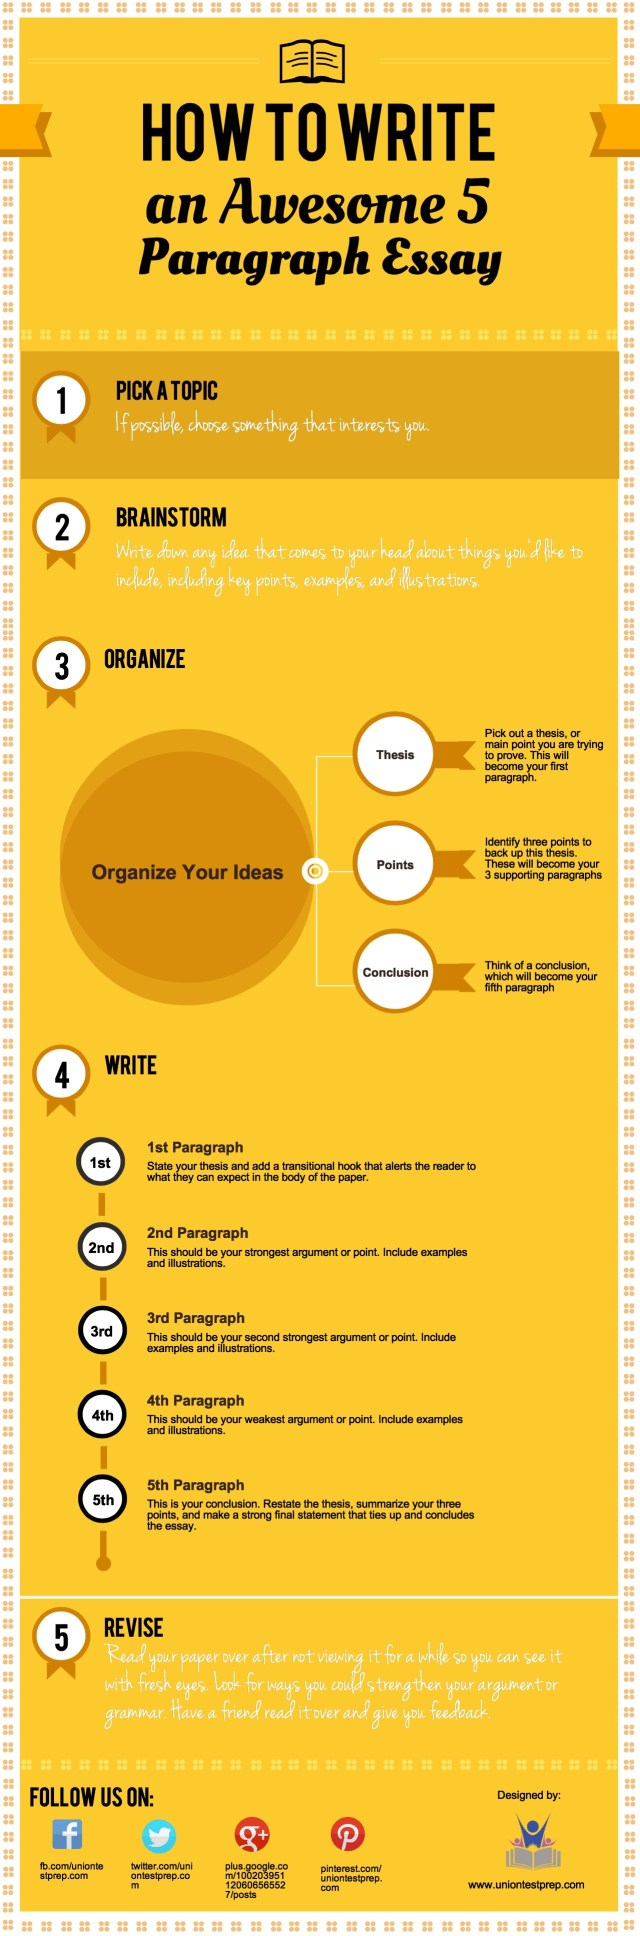 How to Write an Essay in 30 Easy Steps